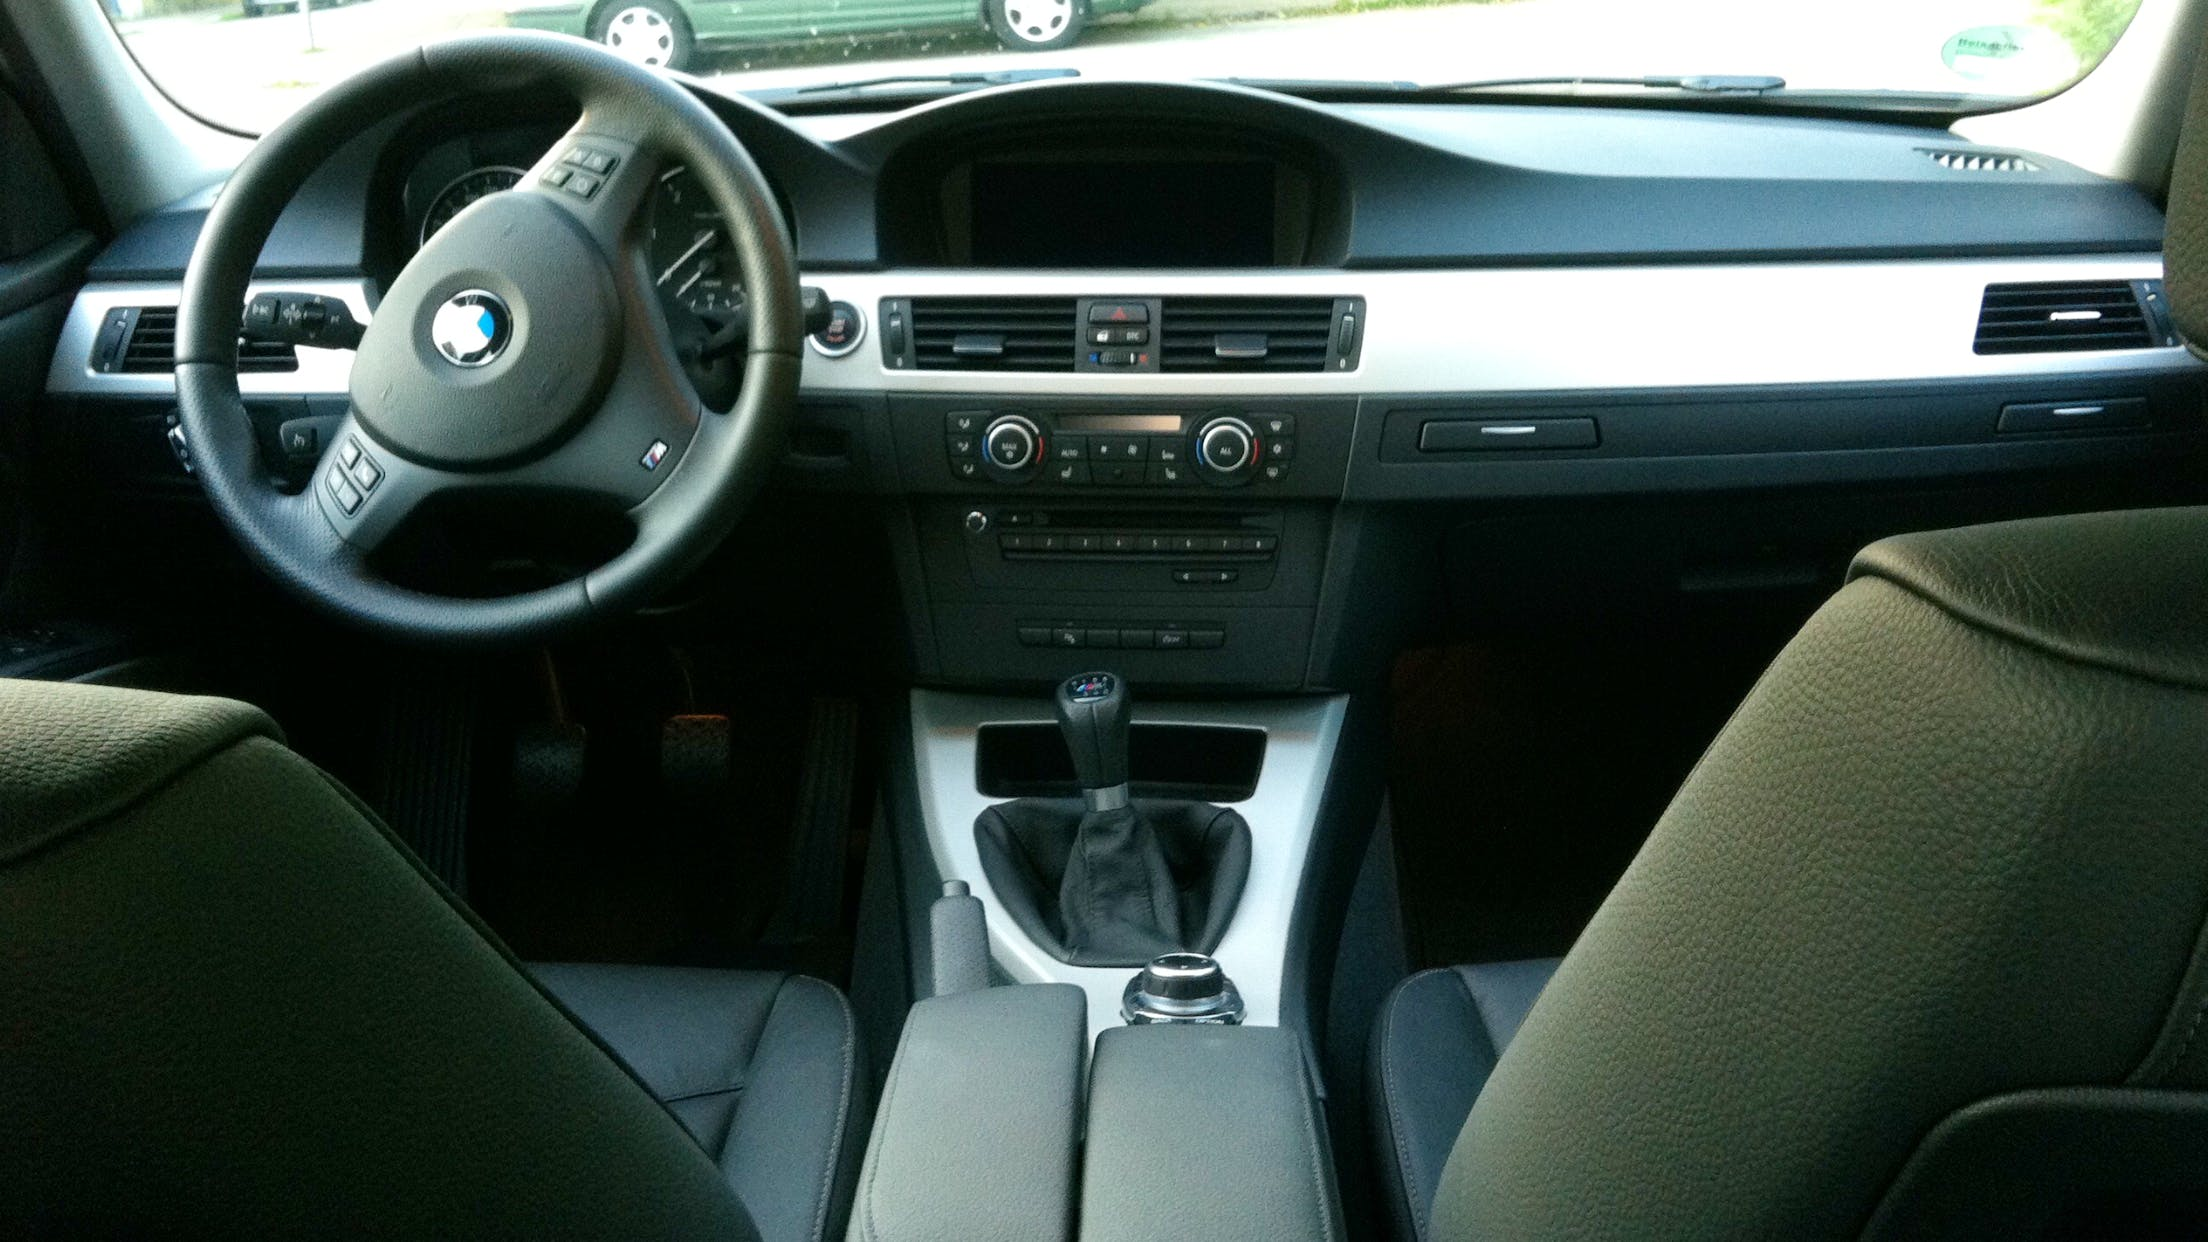 BMW 3er Touring 320D Touring EfficientDynamics mit Klimaanlage/AC